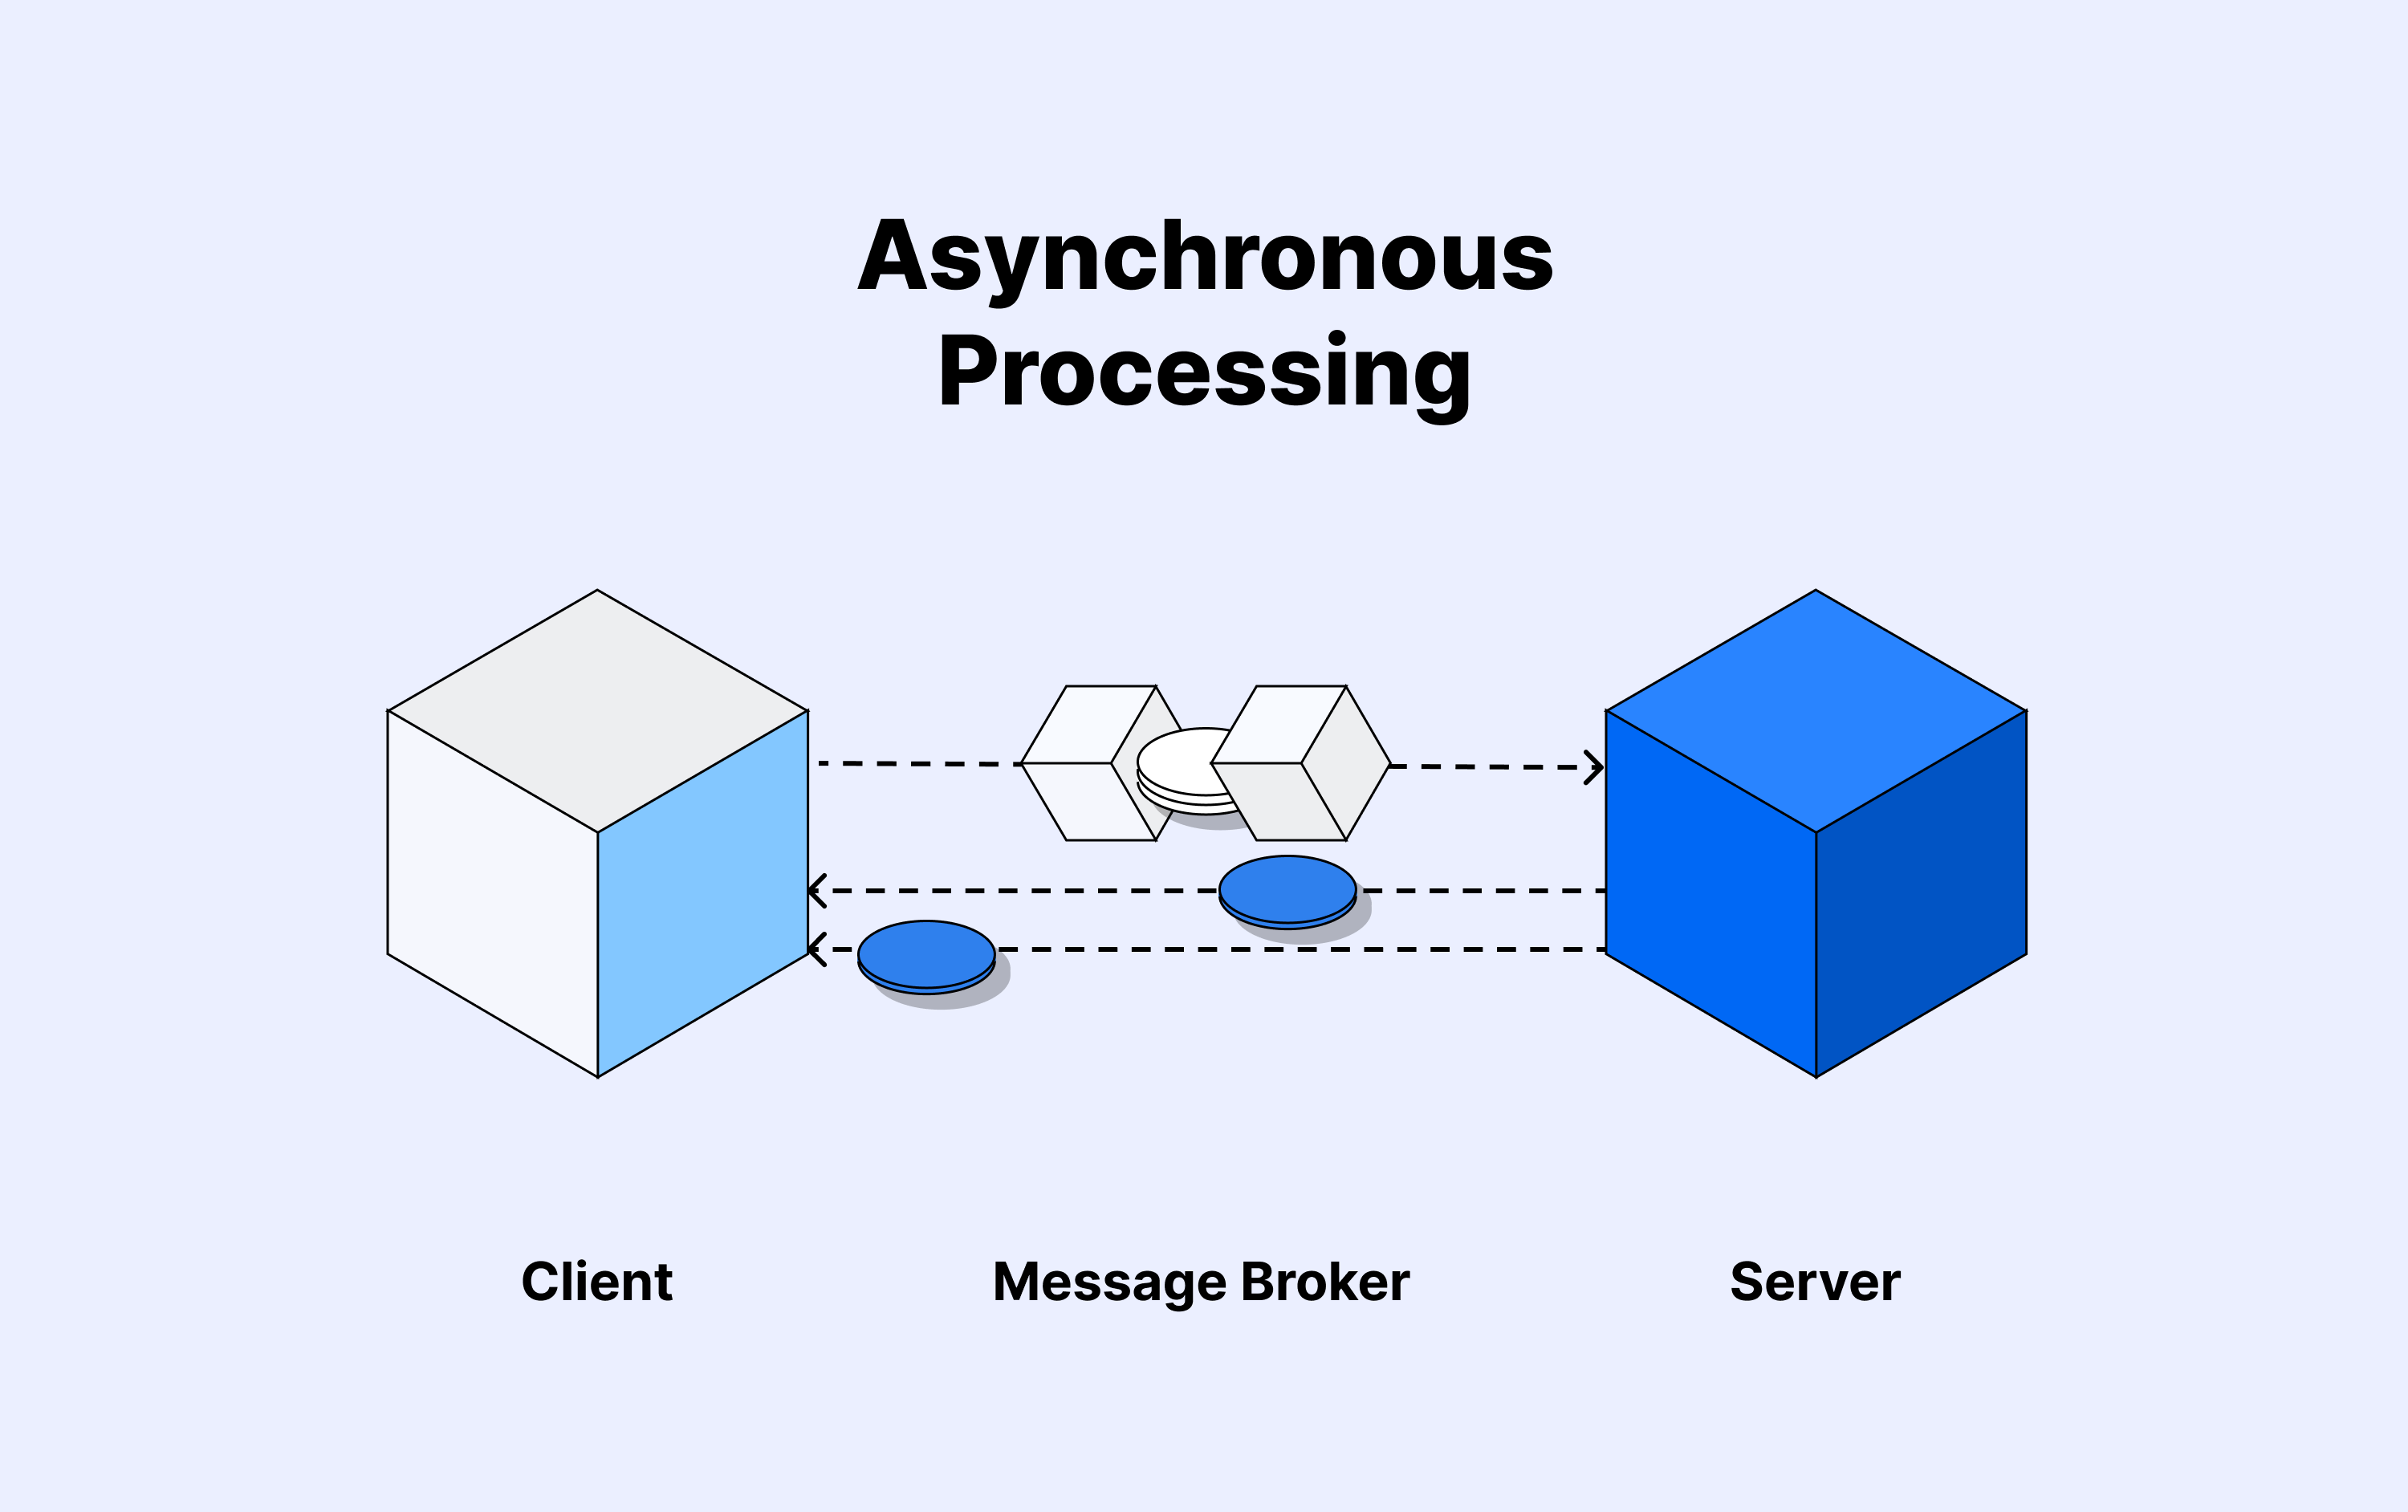 Asynchronous communication processing